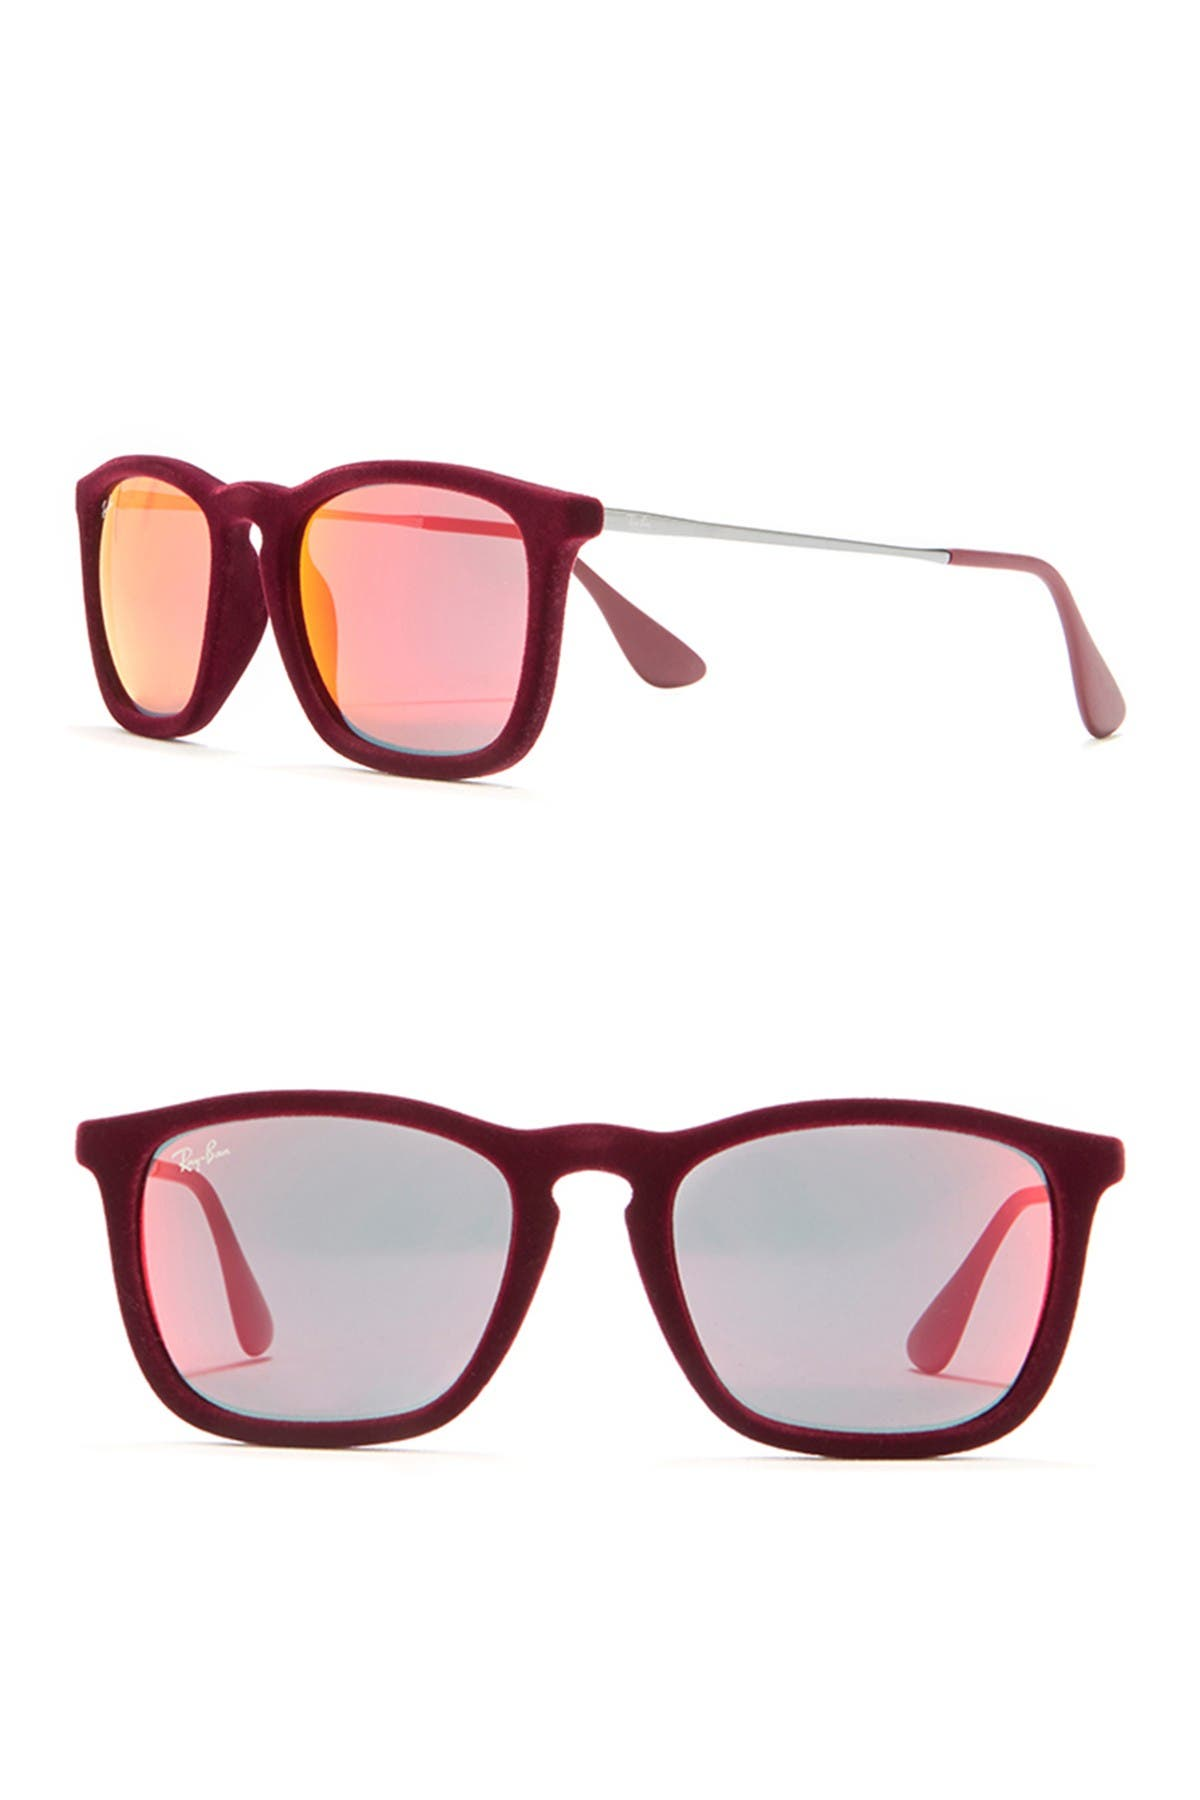 Image of Ray-Ban Youngster Velvet 54mm Square Sunglasses